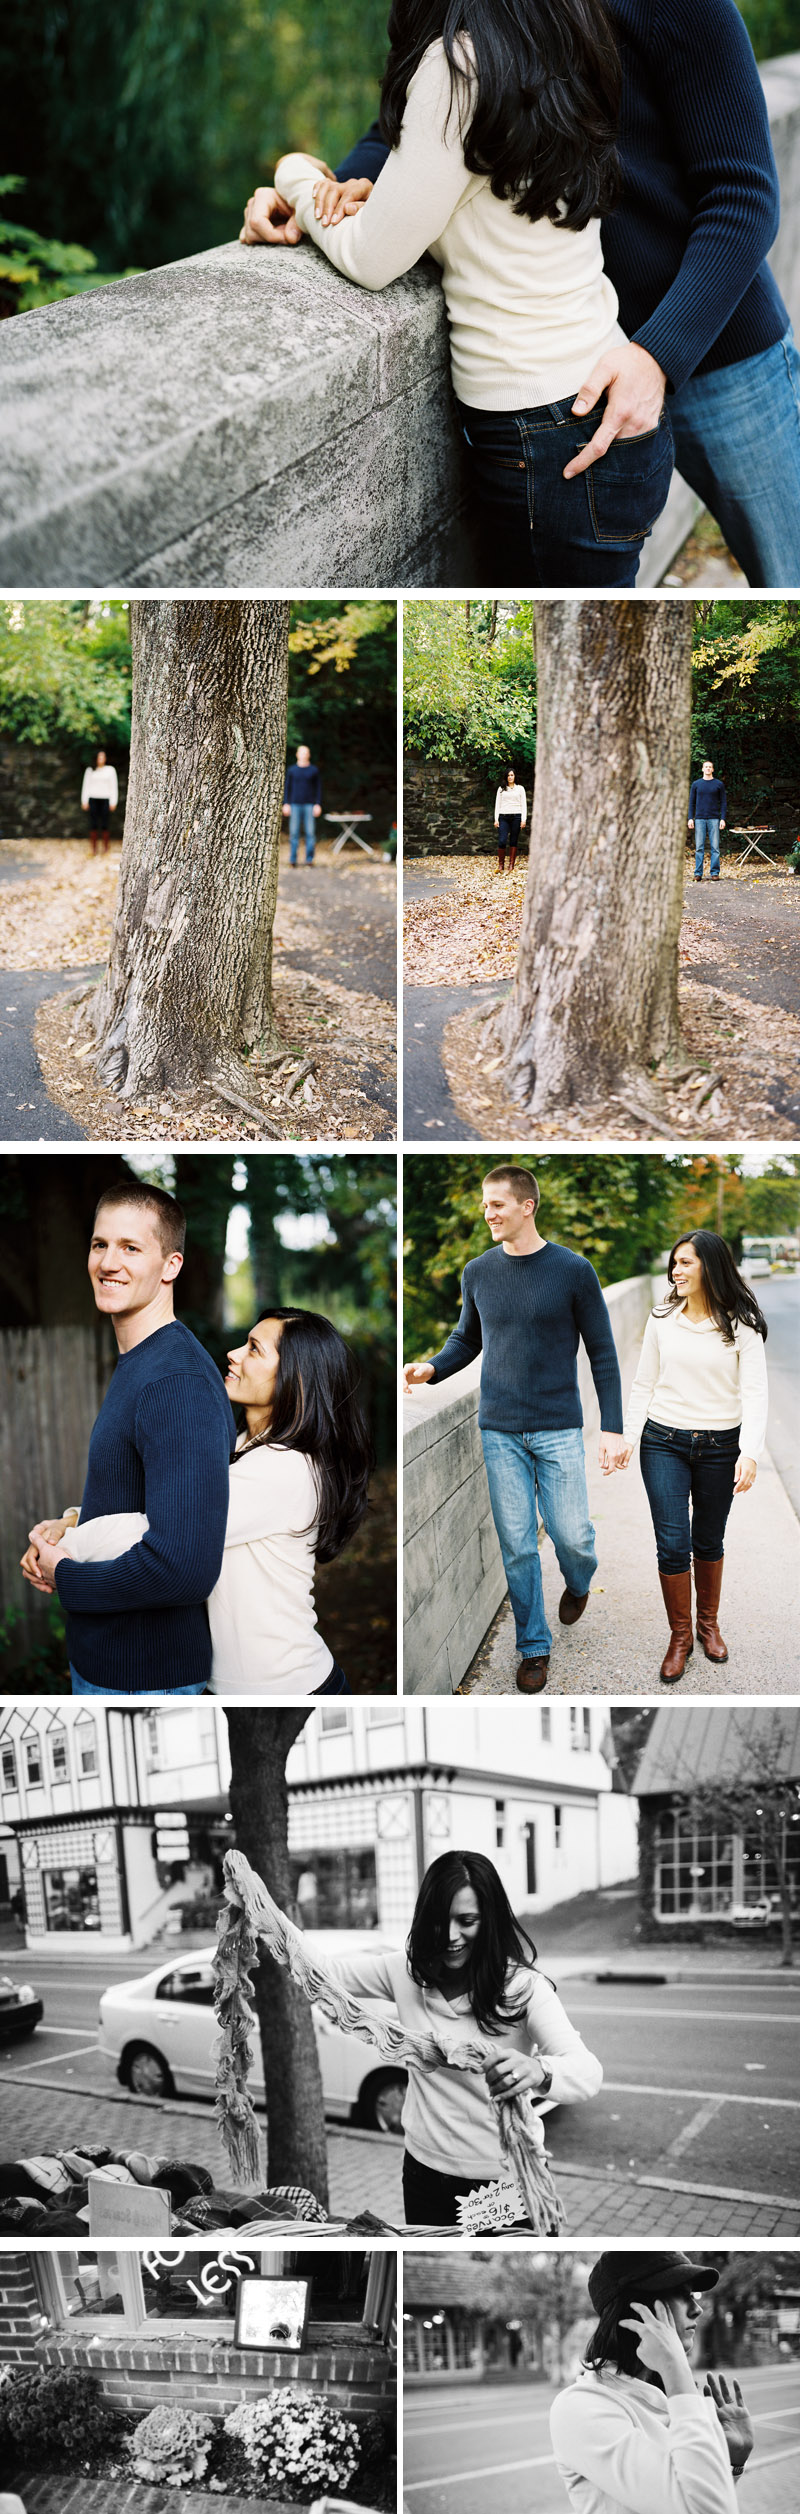 philadelphia engagement photographer michael ash imagery